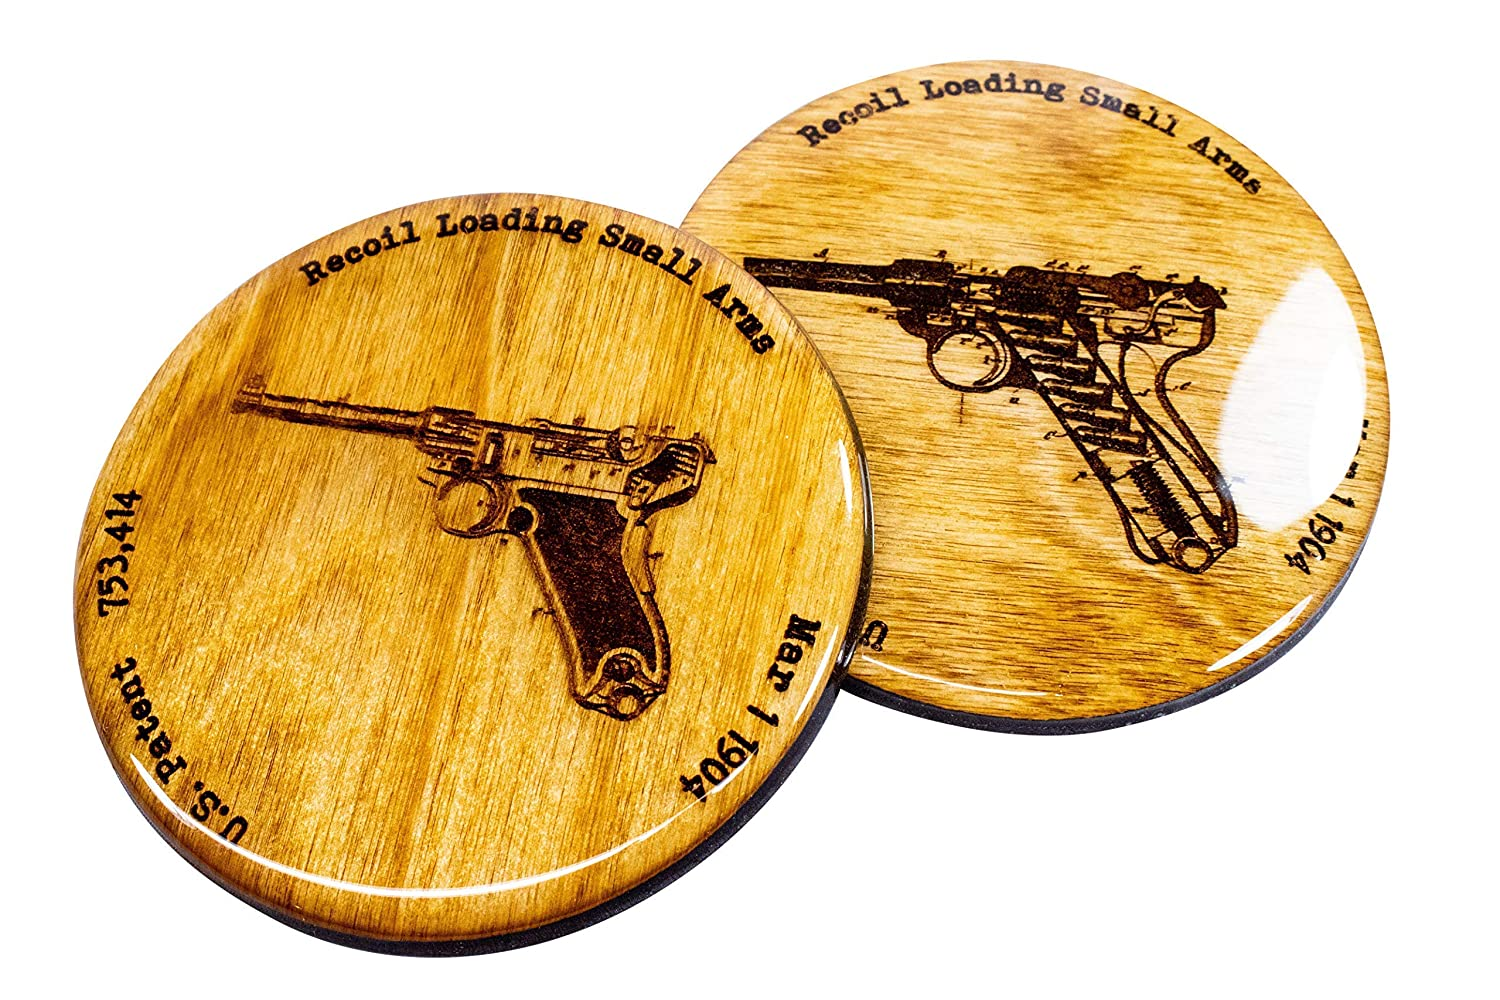 Luger Semi-Automatic Patent Coasters Set of 4 Handmade Wooden Coasters